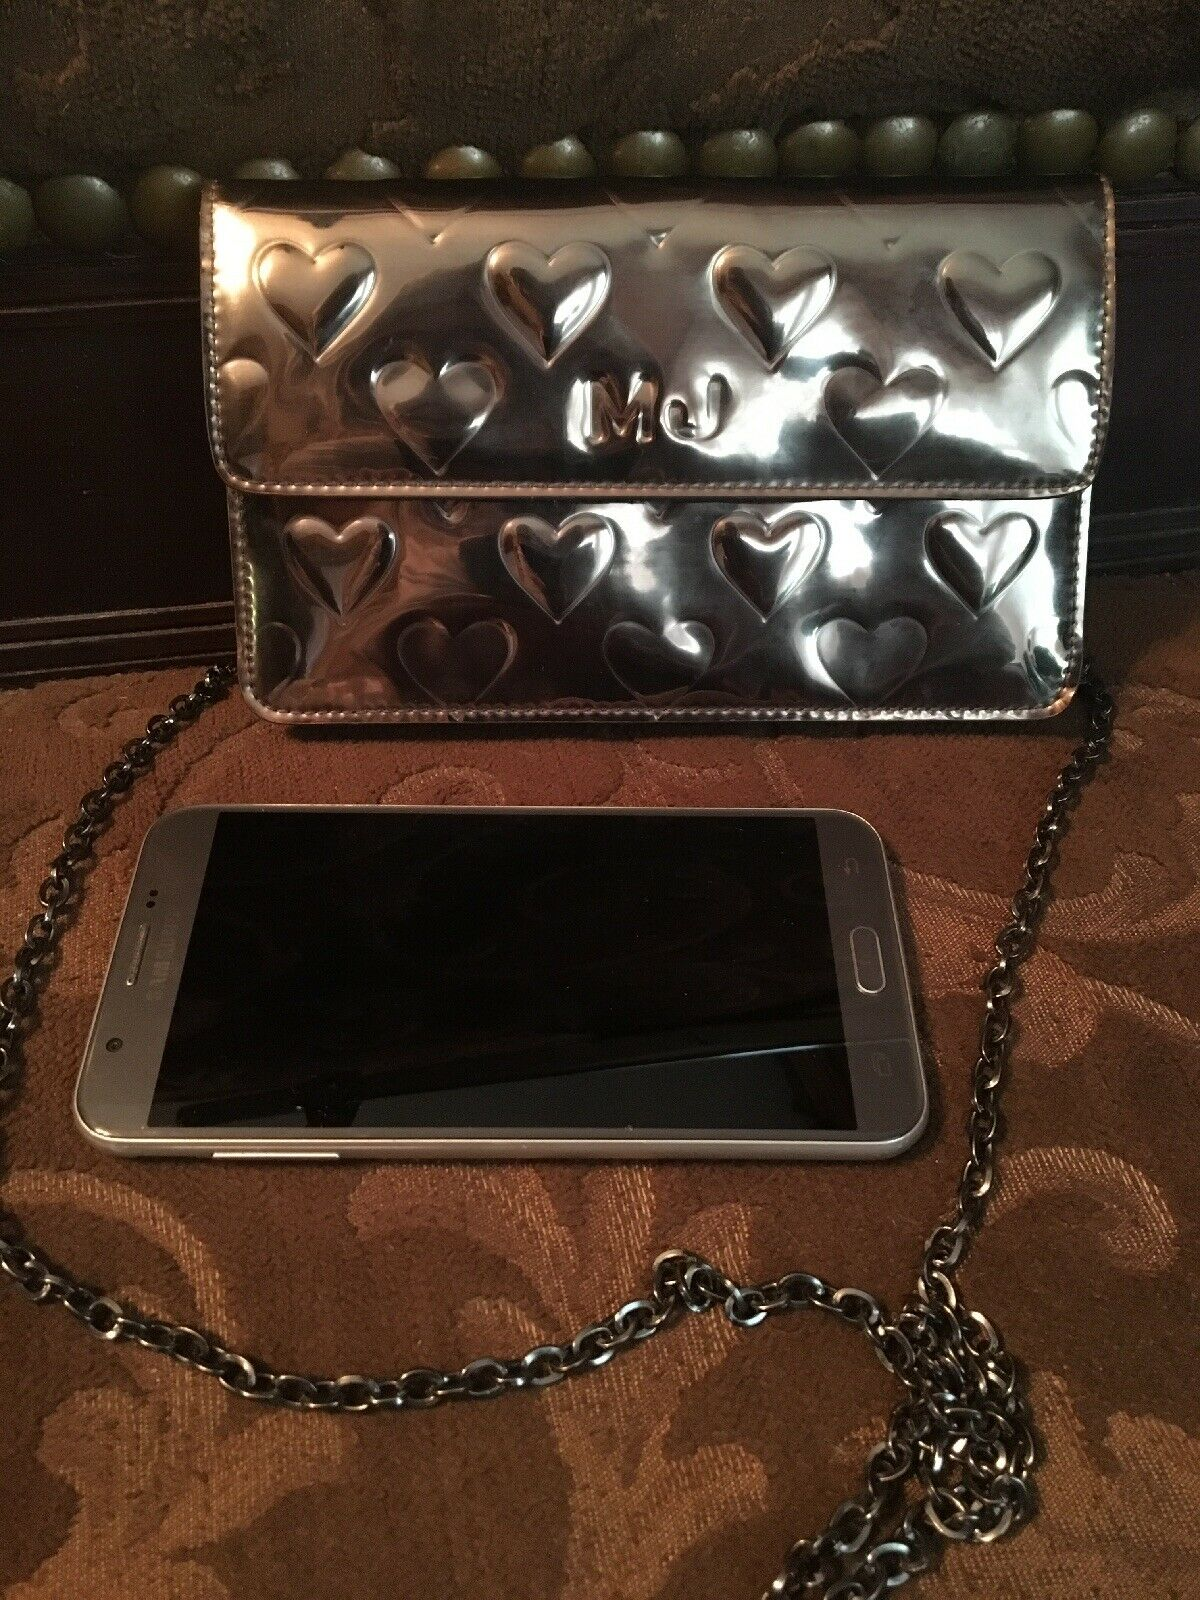 Marc Jacobs RealLeather Metallic Color clutch purse